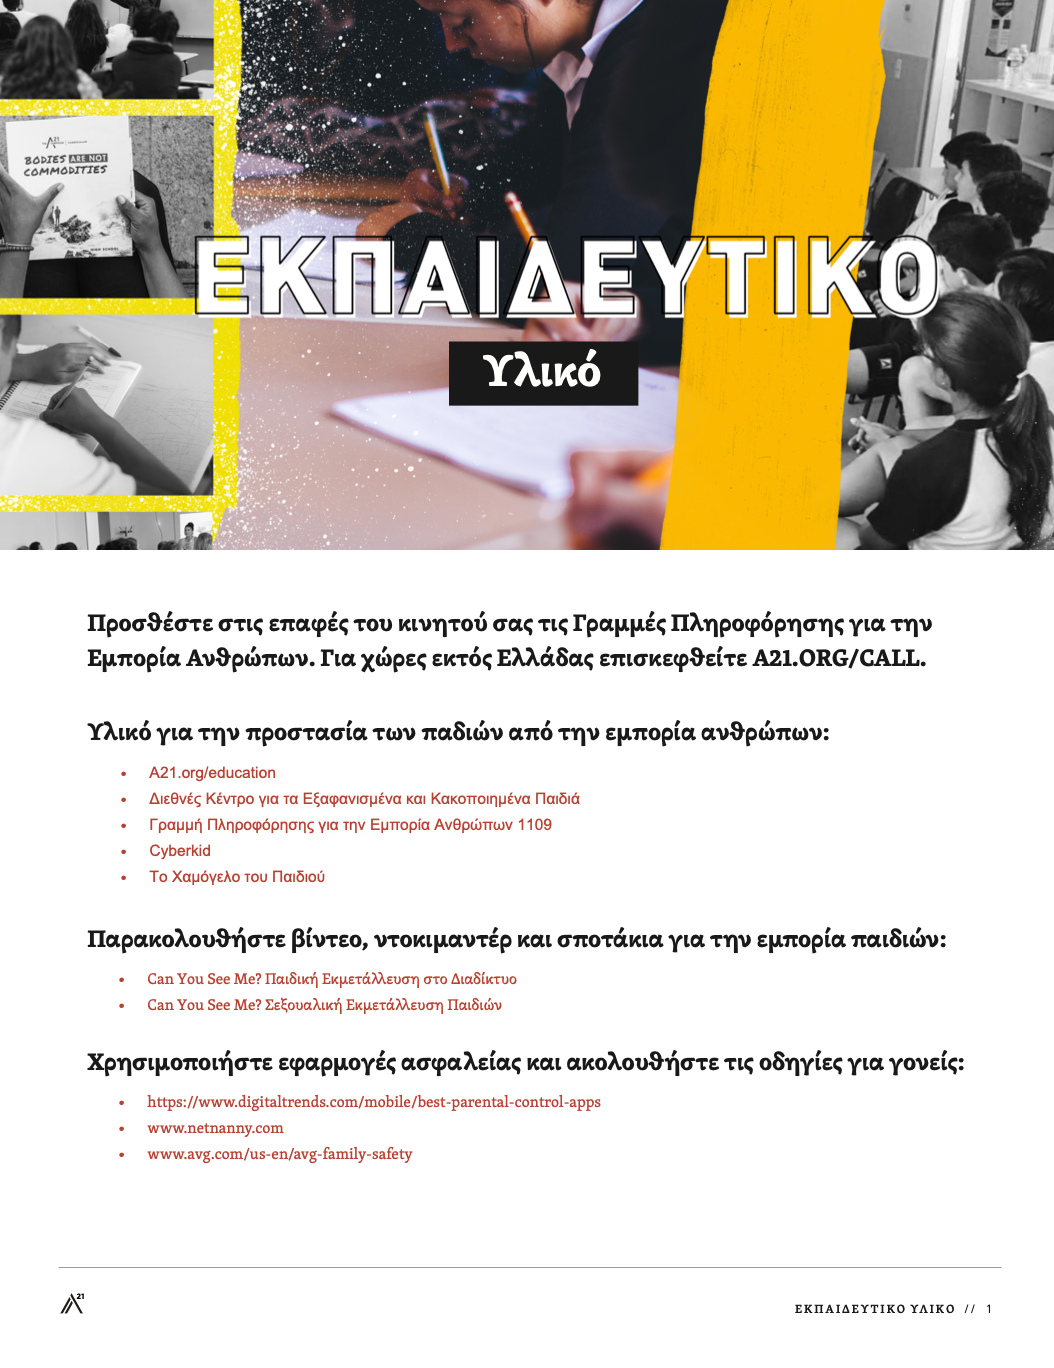 Digital Safety Guide Greece